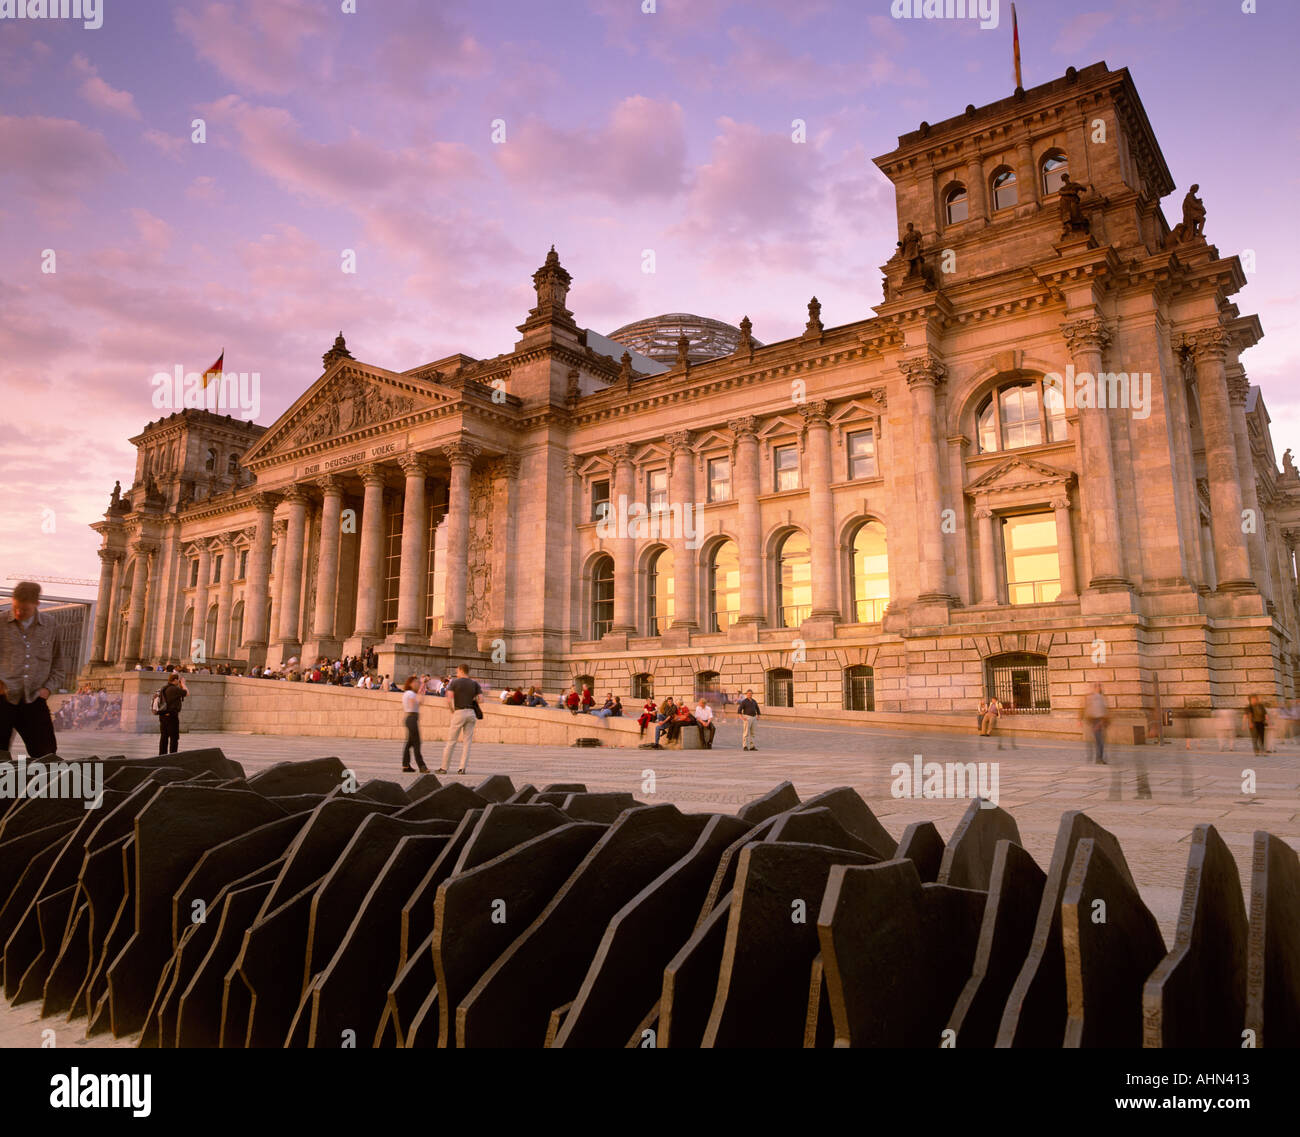 norman foster dome over the reichstag parliament building berlin stock photo royalty free image. Black Bedroom Furniture Sets. Home Design Ideas